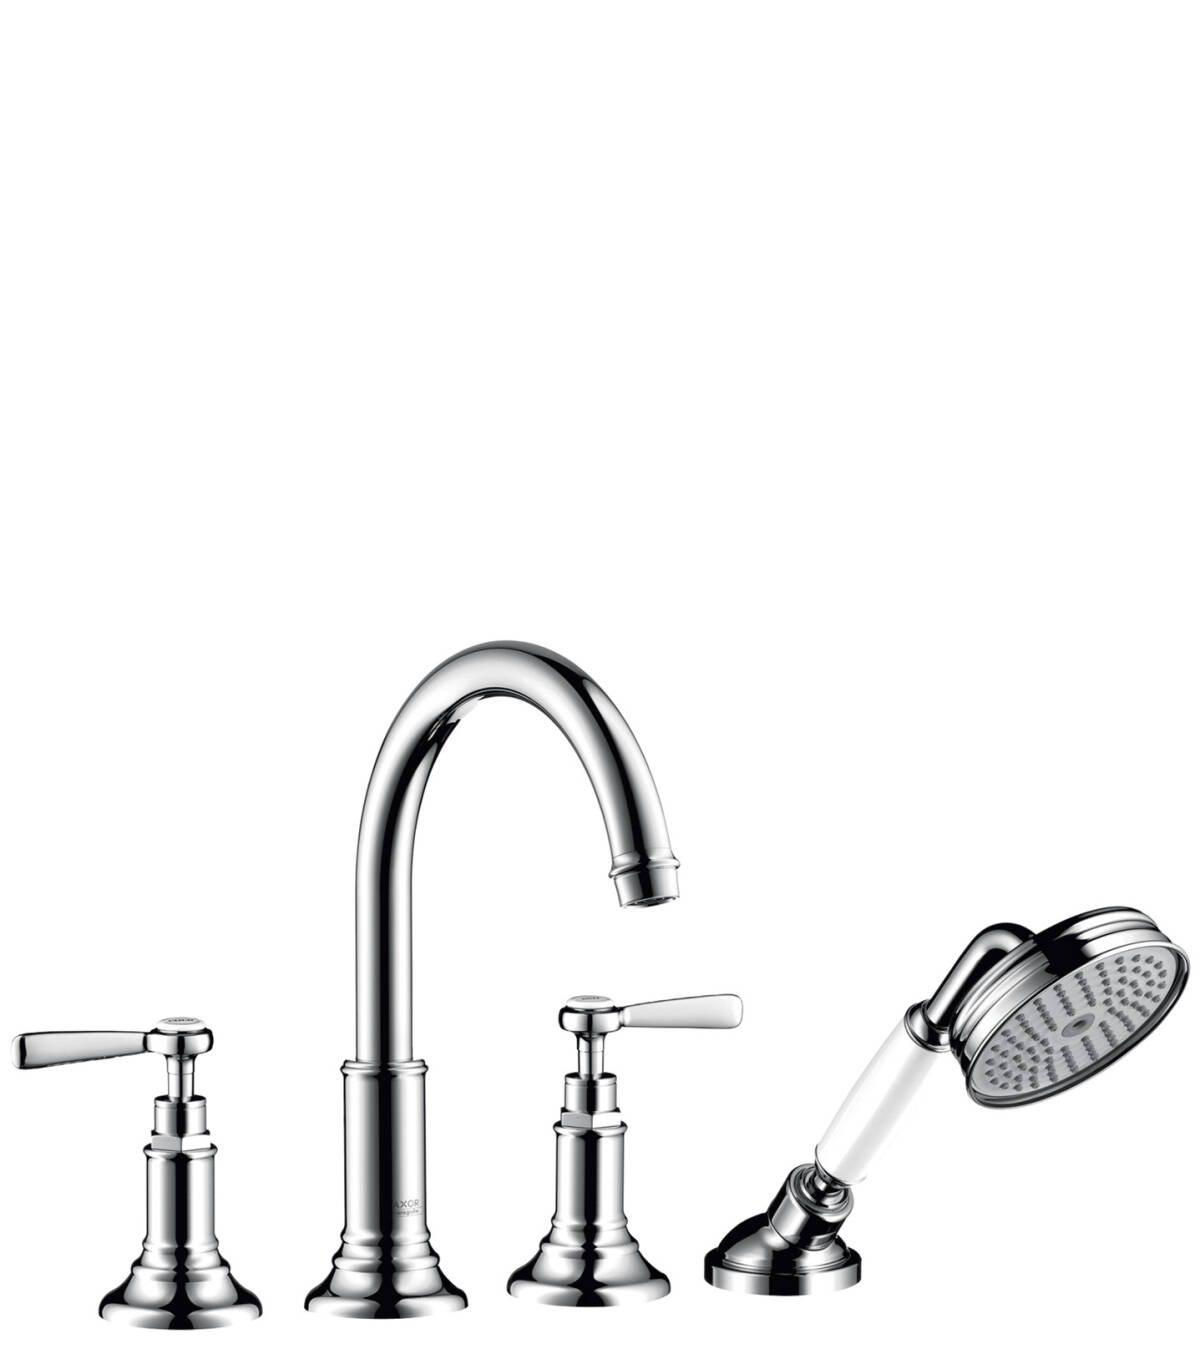 4-hole rim mounted bath mixer with lever handles, Brushed Chrome, 16550260